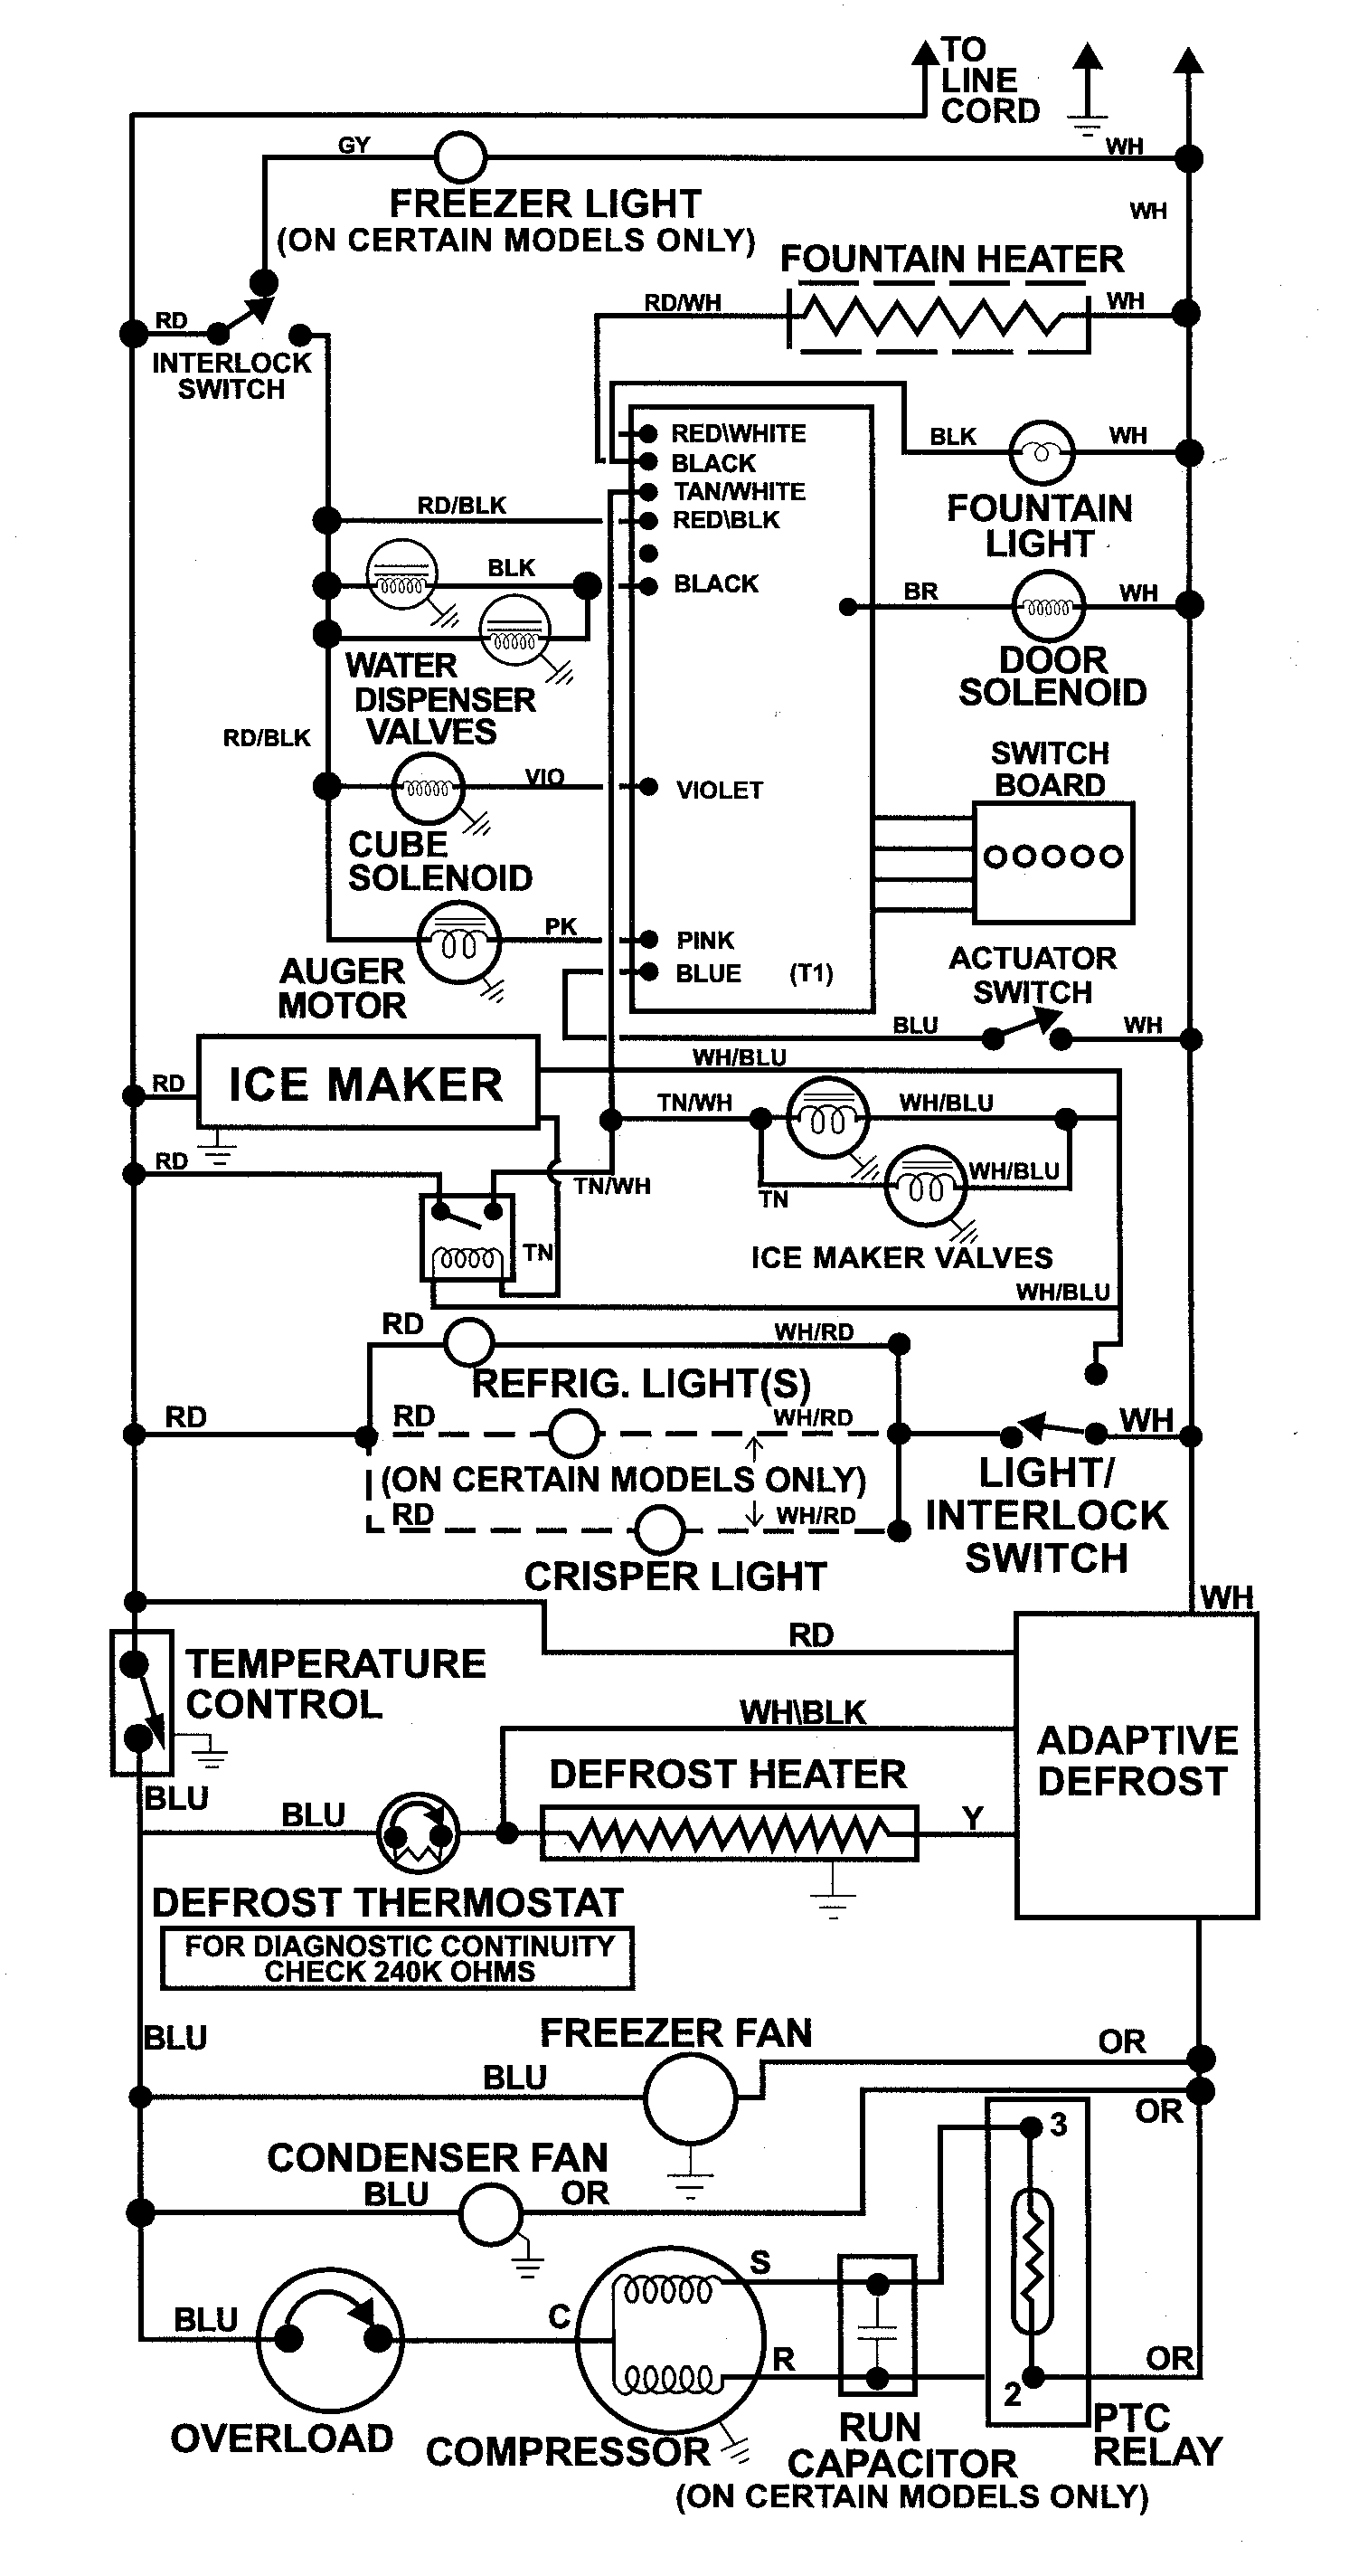 medium resolution of looking for maytag model msd2656deq side by side refrigerator repair maytag refrigerator schematic diagram maytag msd2656deq